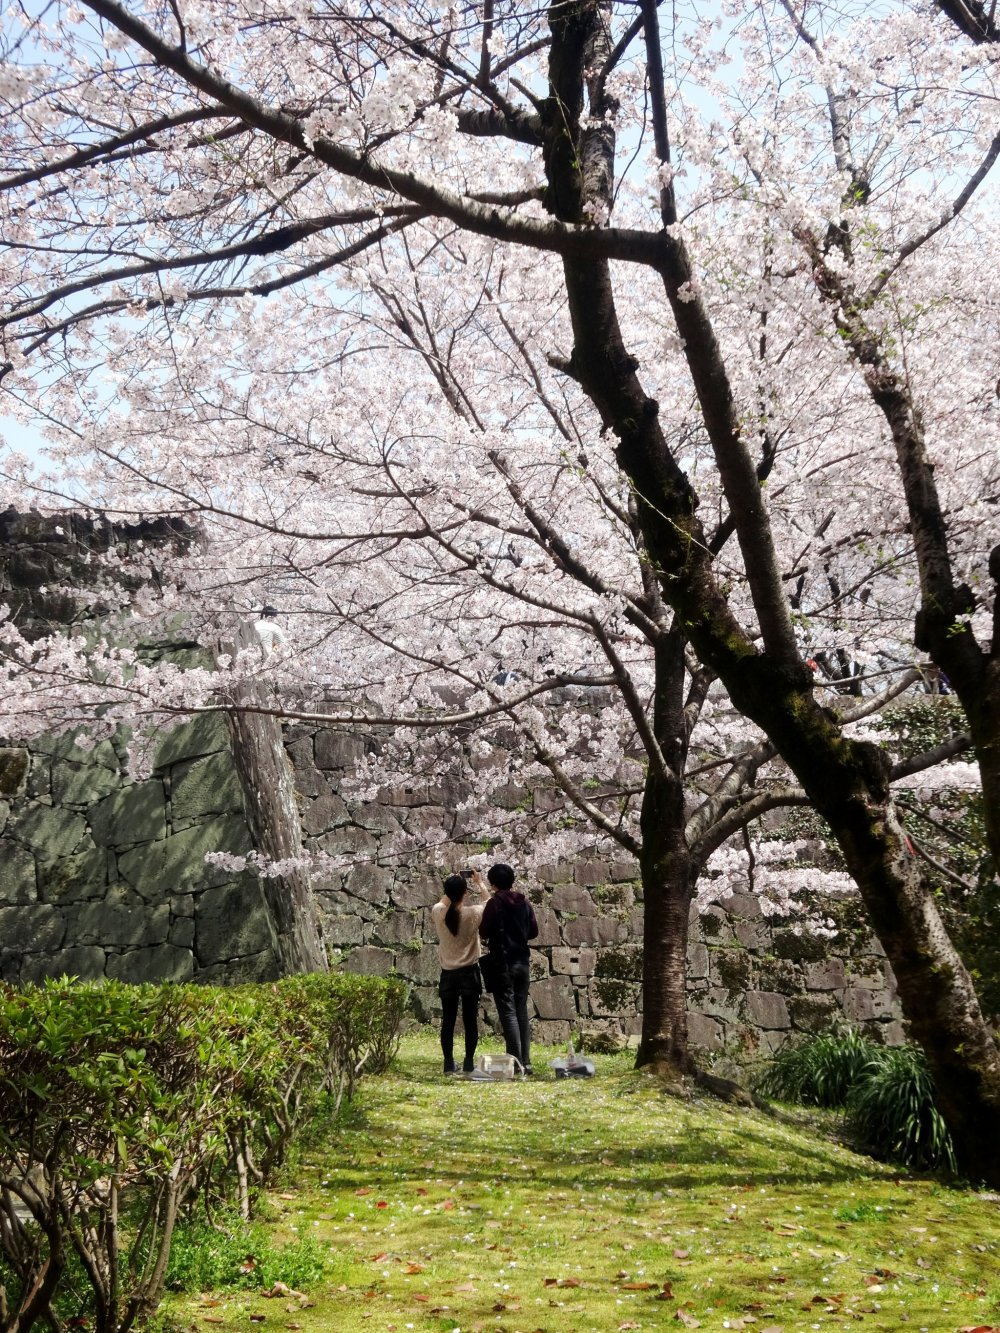 The sakura outside the castle walls are almost more impressive than those within